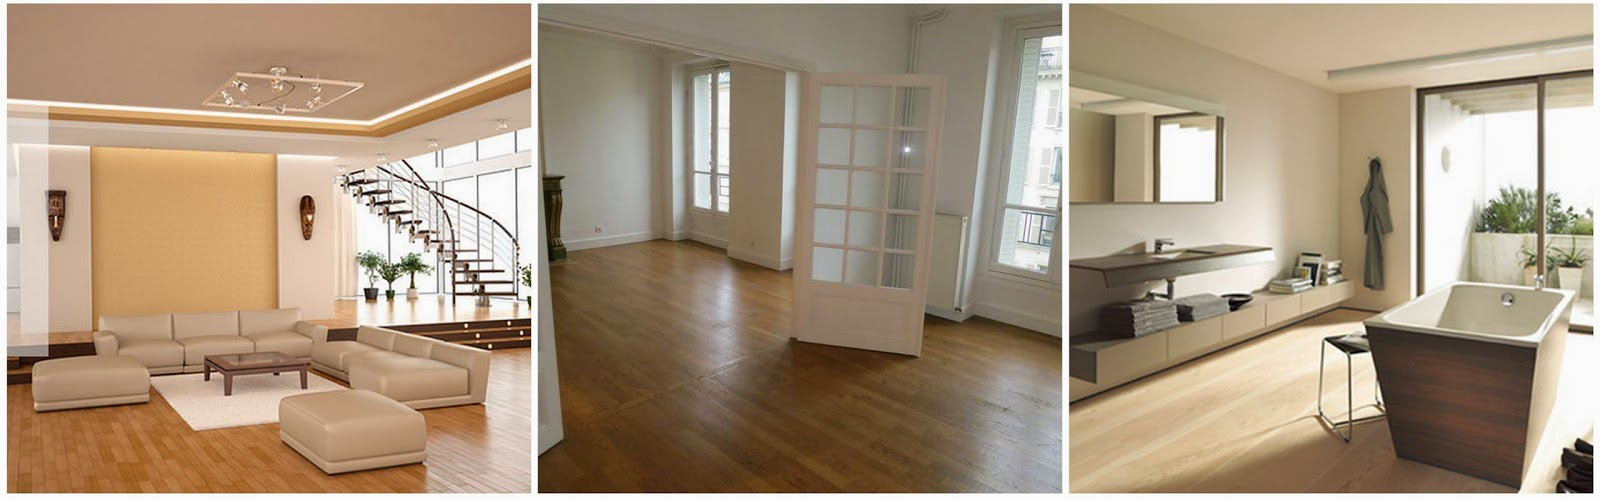 Travaux appartement 92240 malakoff